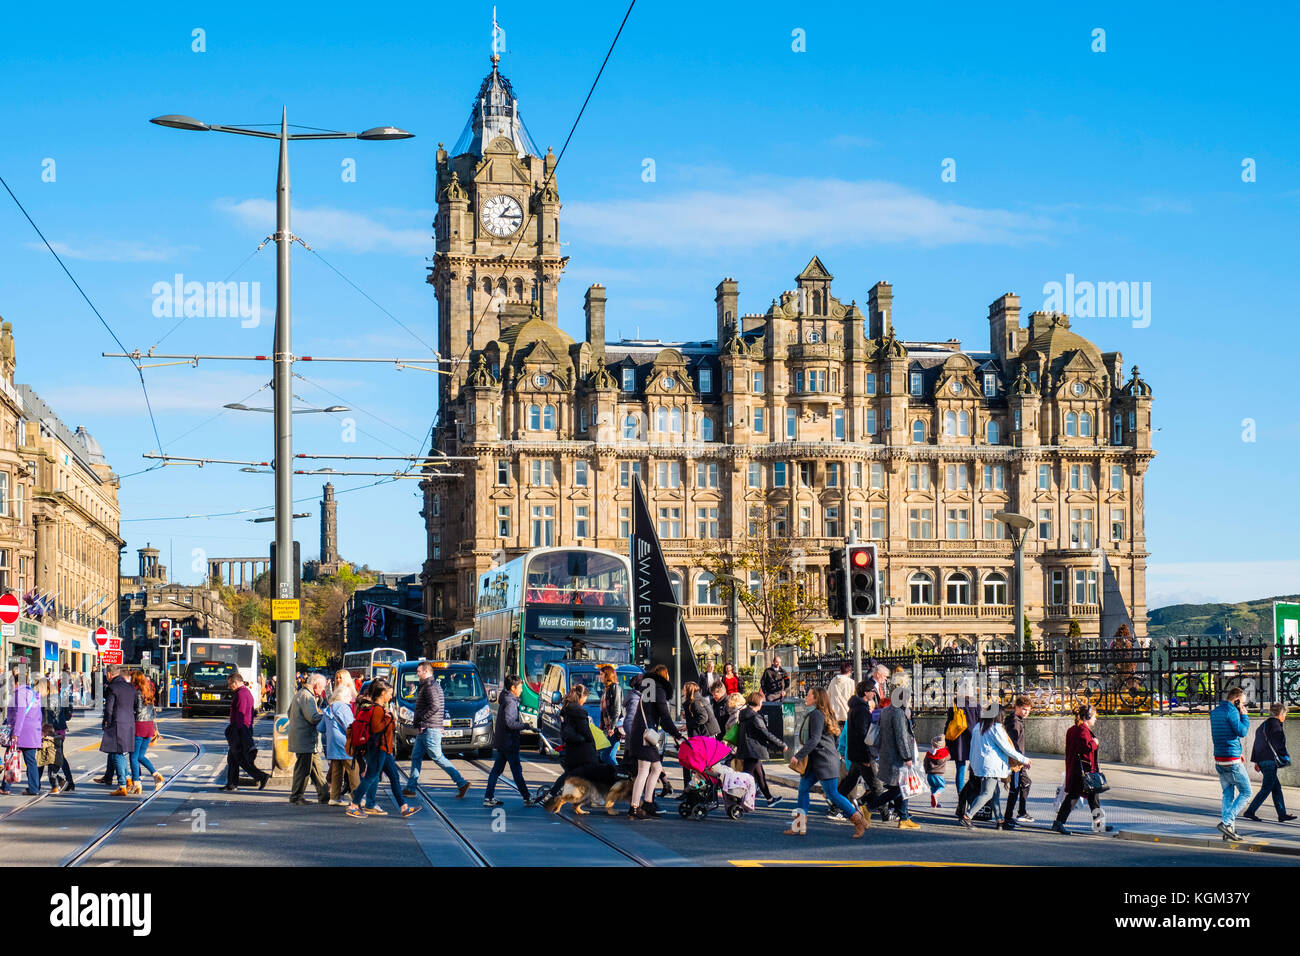 View along Princes street to the  Balmoral Hotel with busy pedestrian crossing Edinburgh , Scotland, United Kingdom. - Stock Image